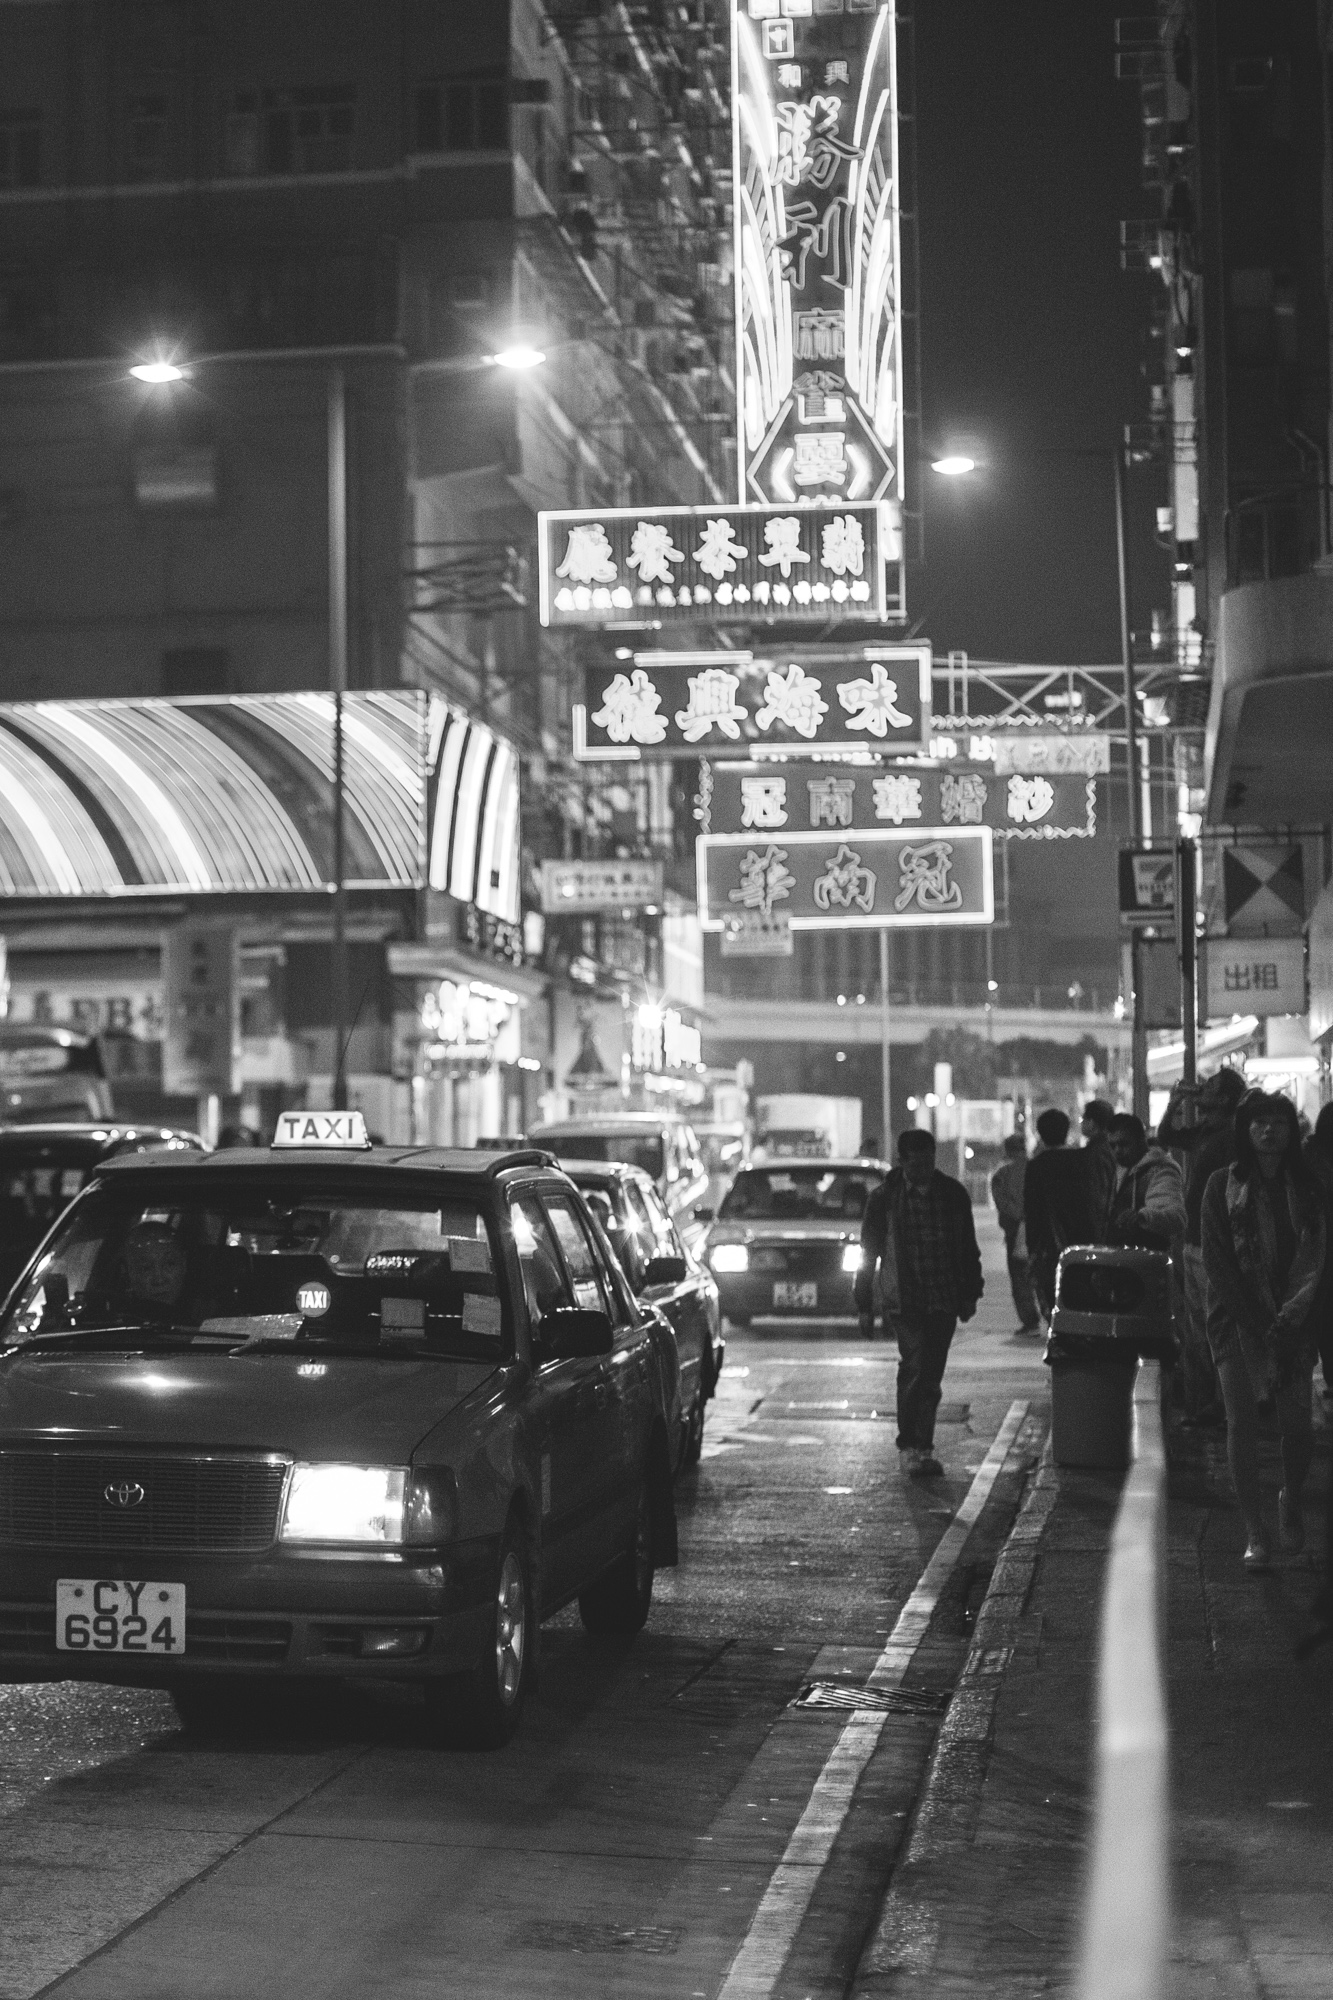 Hong Kong is littered with overhanging neon signs that seemingly defy gravity, and the Temple Street area is of no exception.